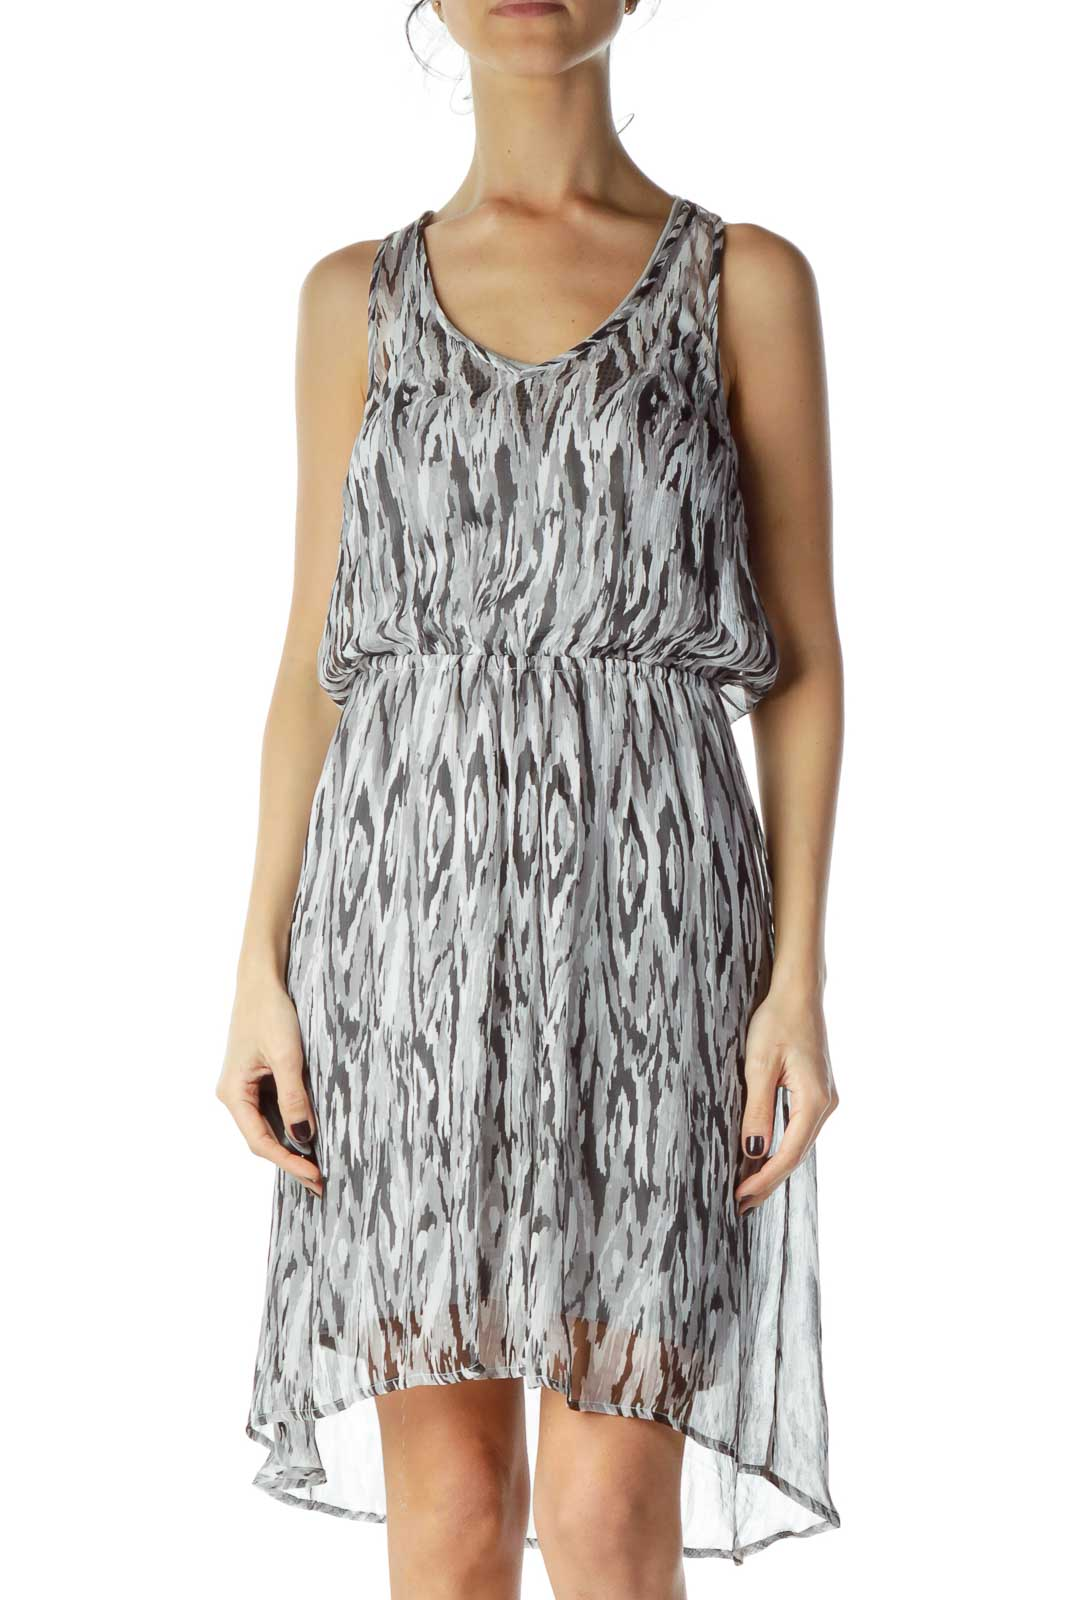 Gray Black Print Sheer Stretchy A-line Dress Front